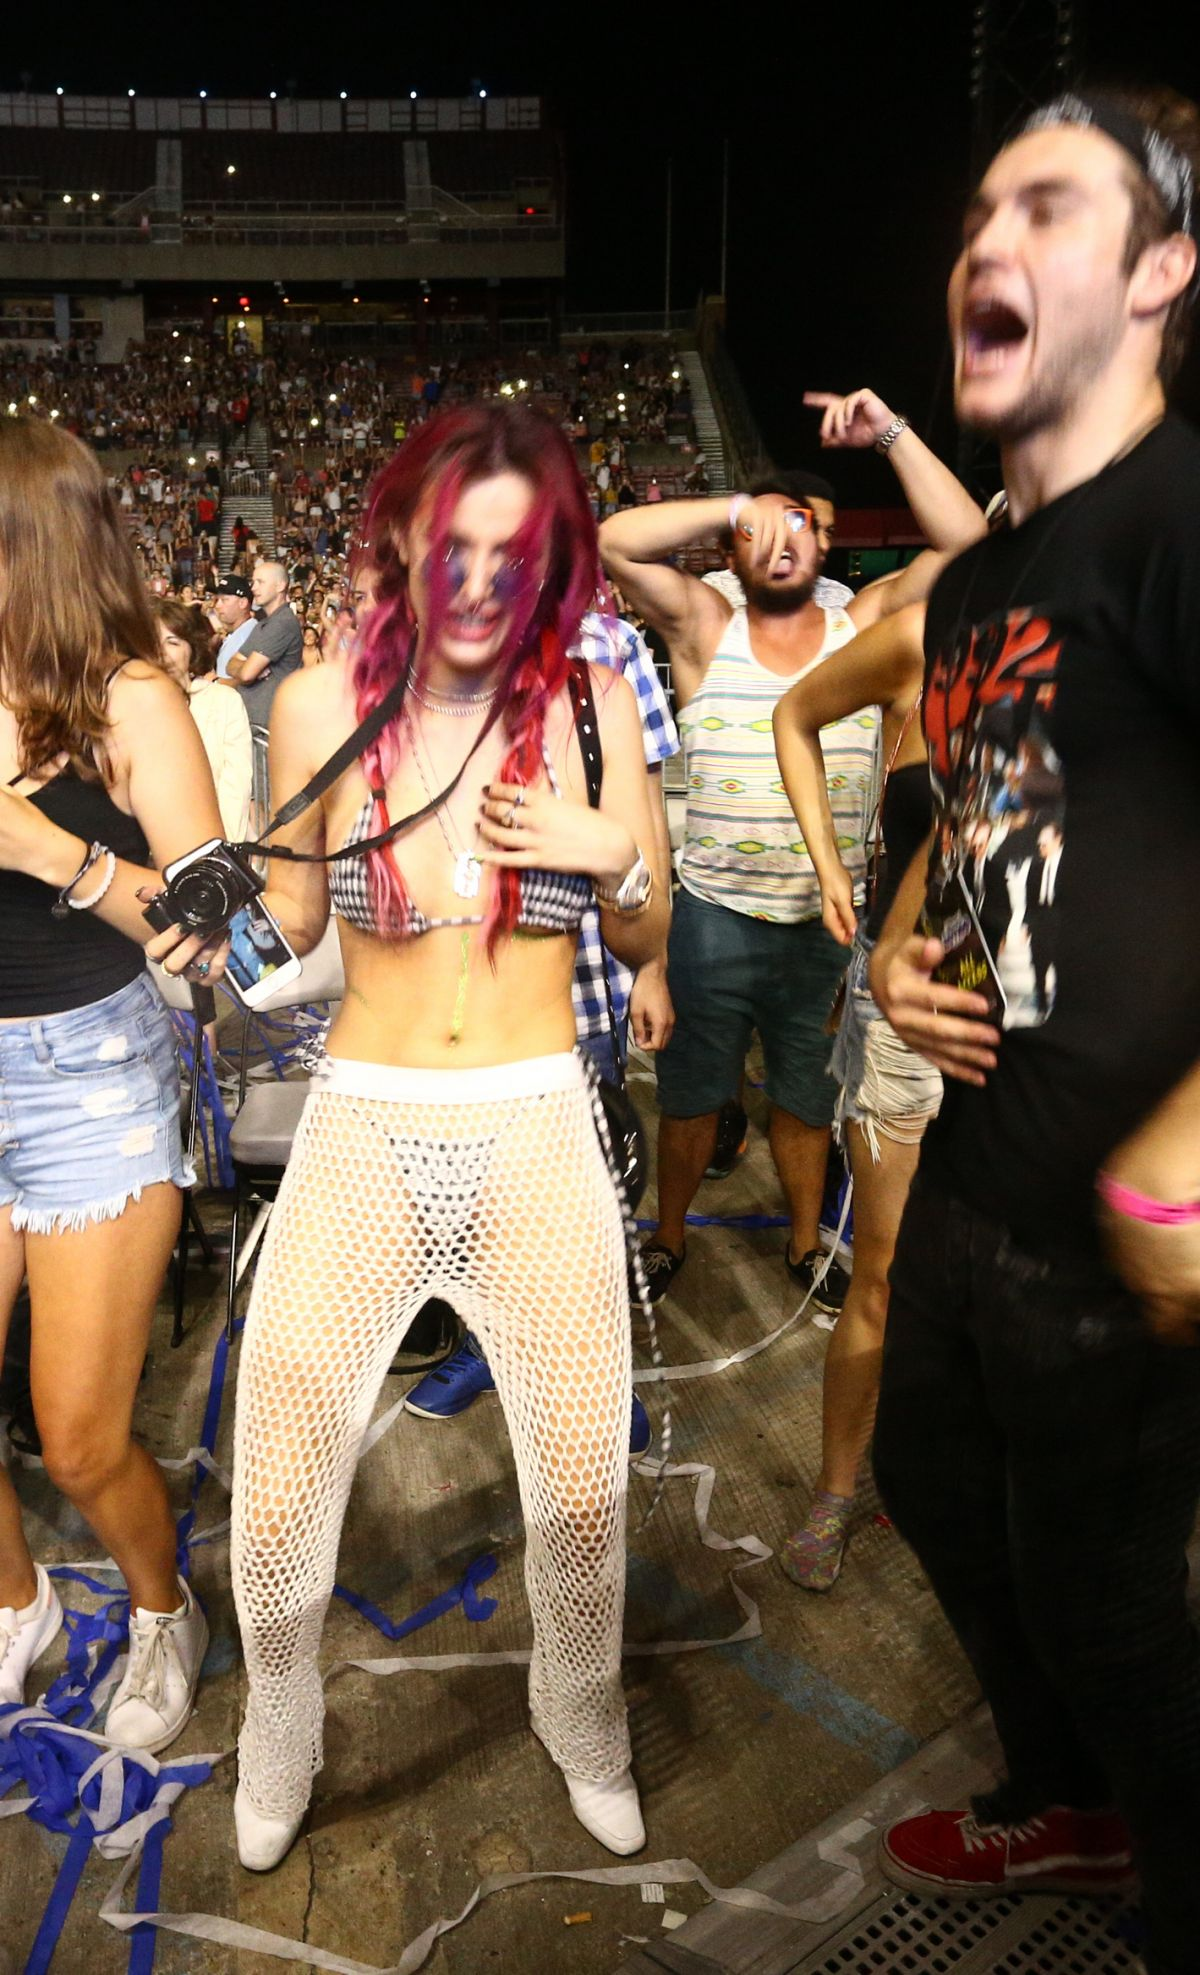 BELLA THORNE Dancing in the Crowd at Billboard Hot 100 Festival in New York 08/19/2017